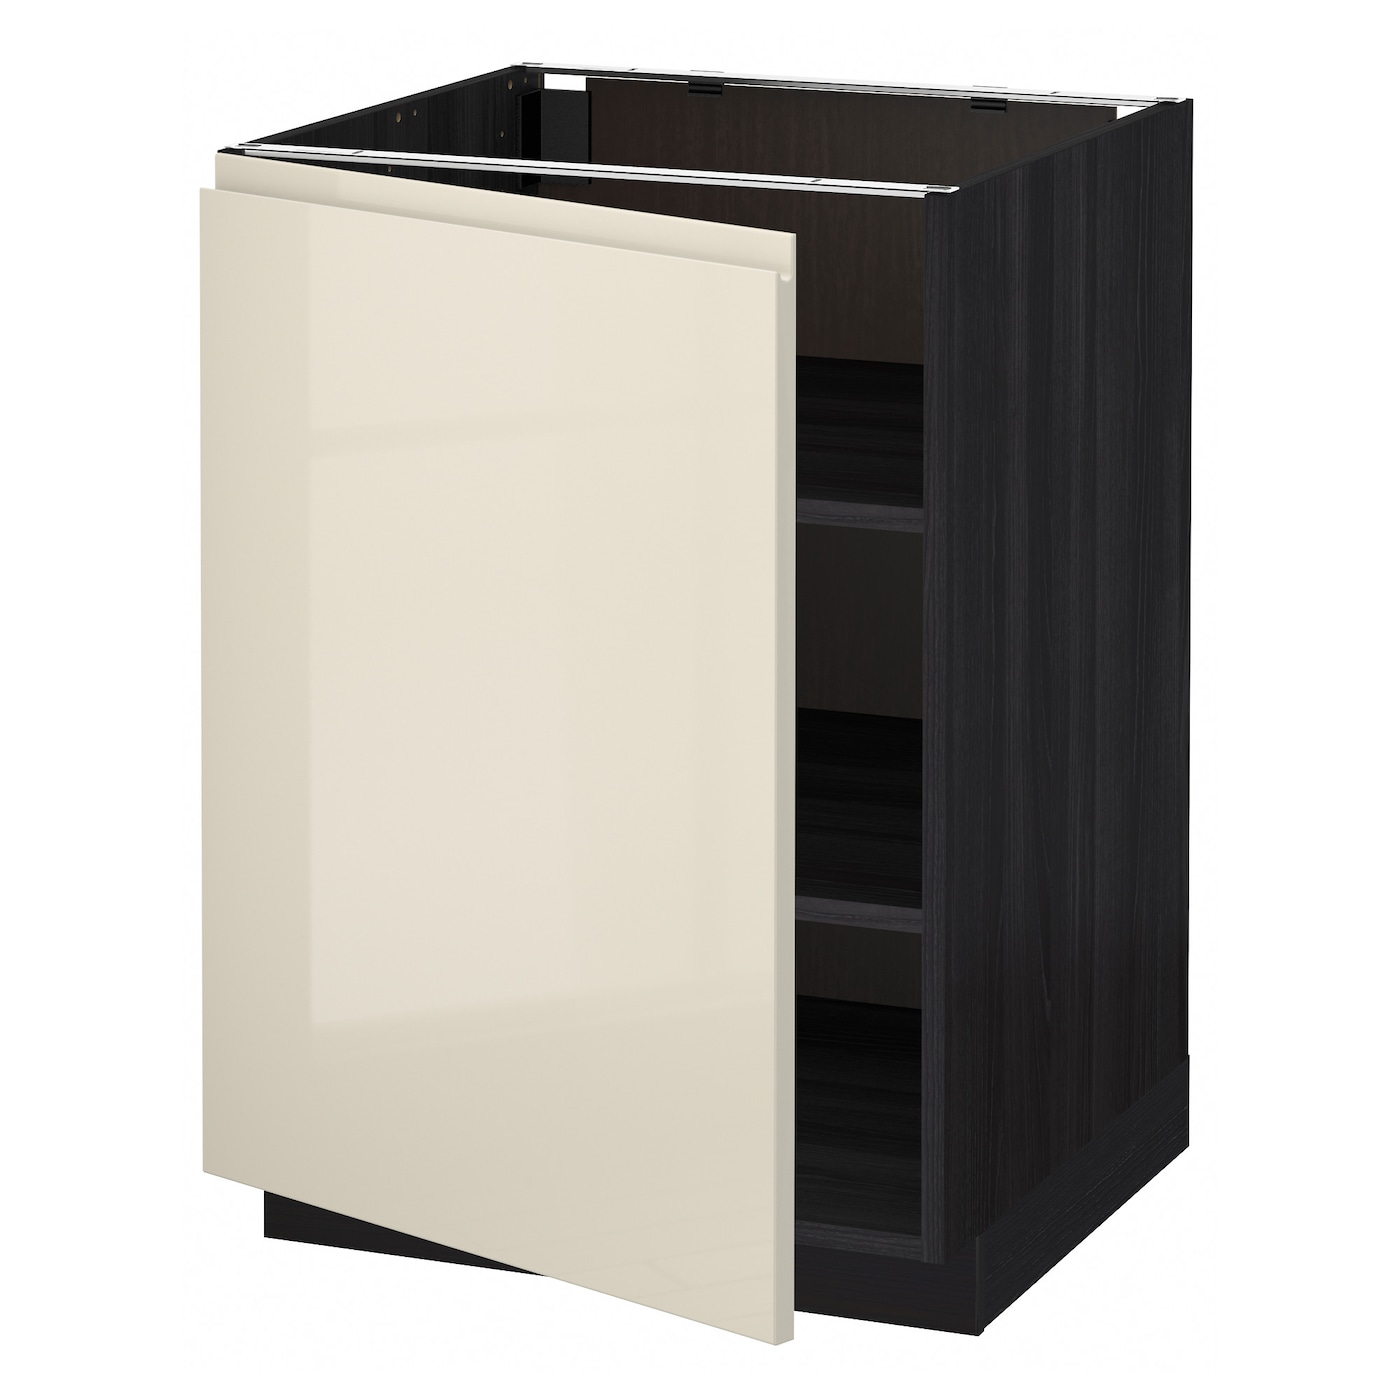 Dark Beige Kitchen Cabinets: METOD Base Cabinet With Shelves Black/voxtorp High-gloss